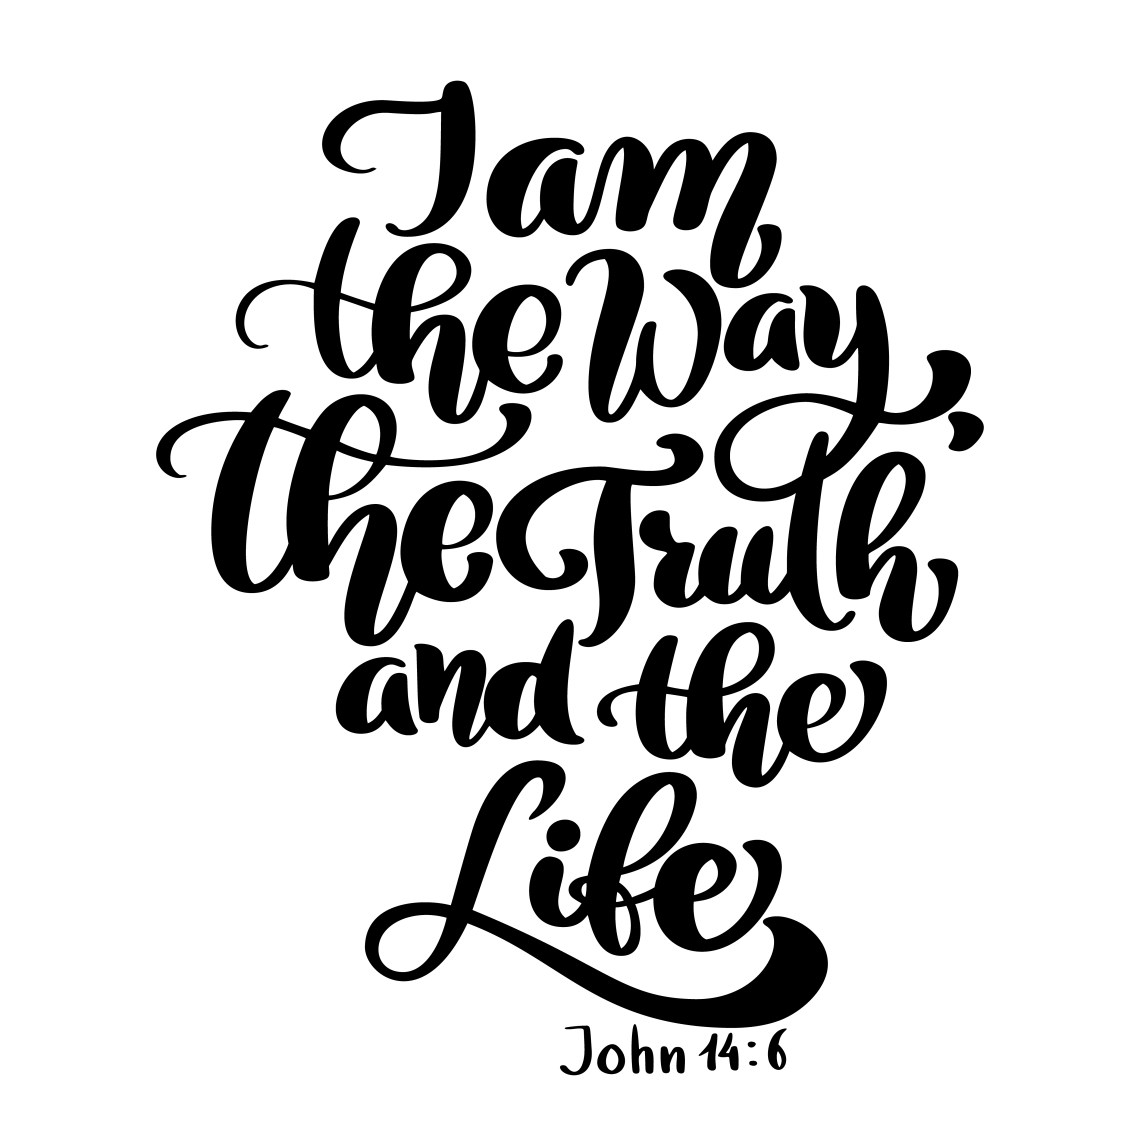 Download Hand lettering I am the way, truth and life, John 14 6 ...